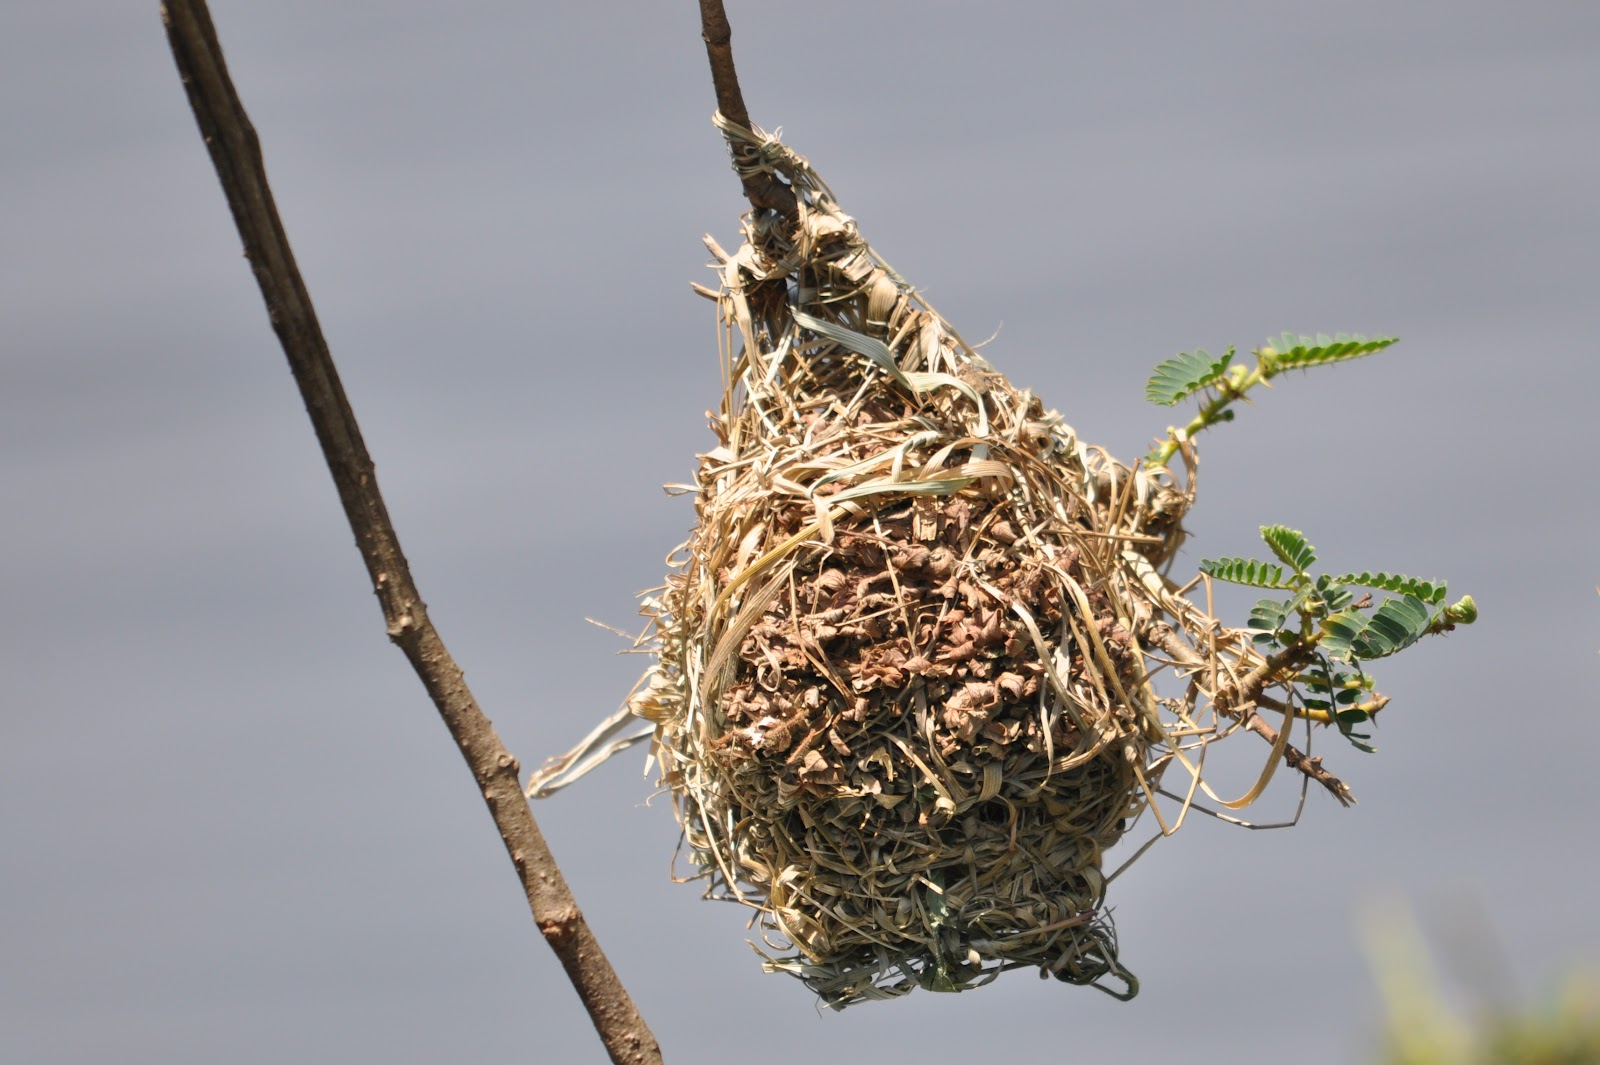 Weaver bird nest pictures - photo#16